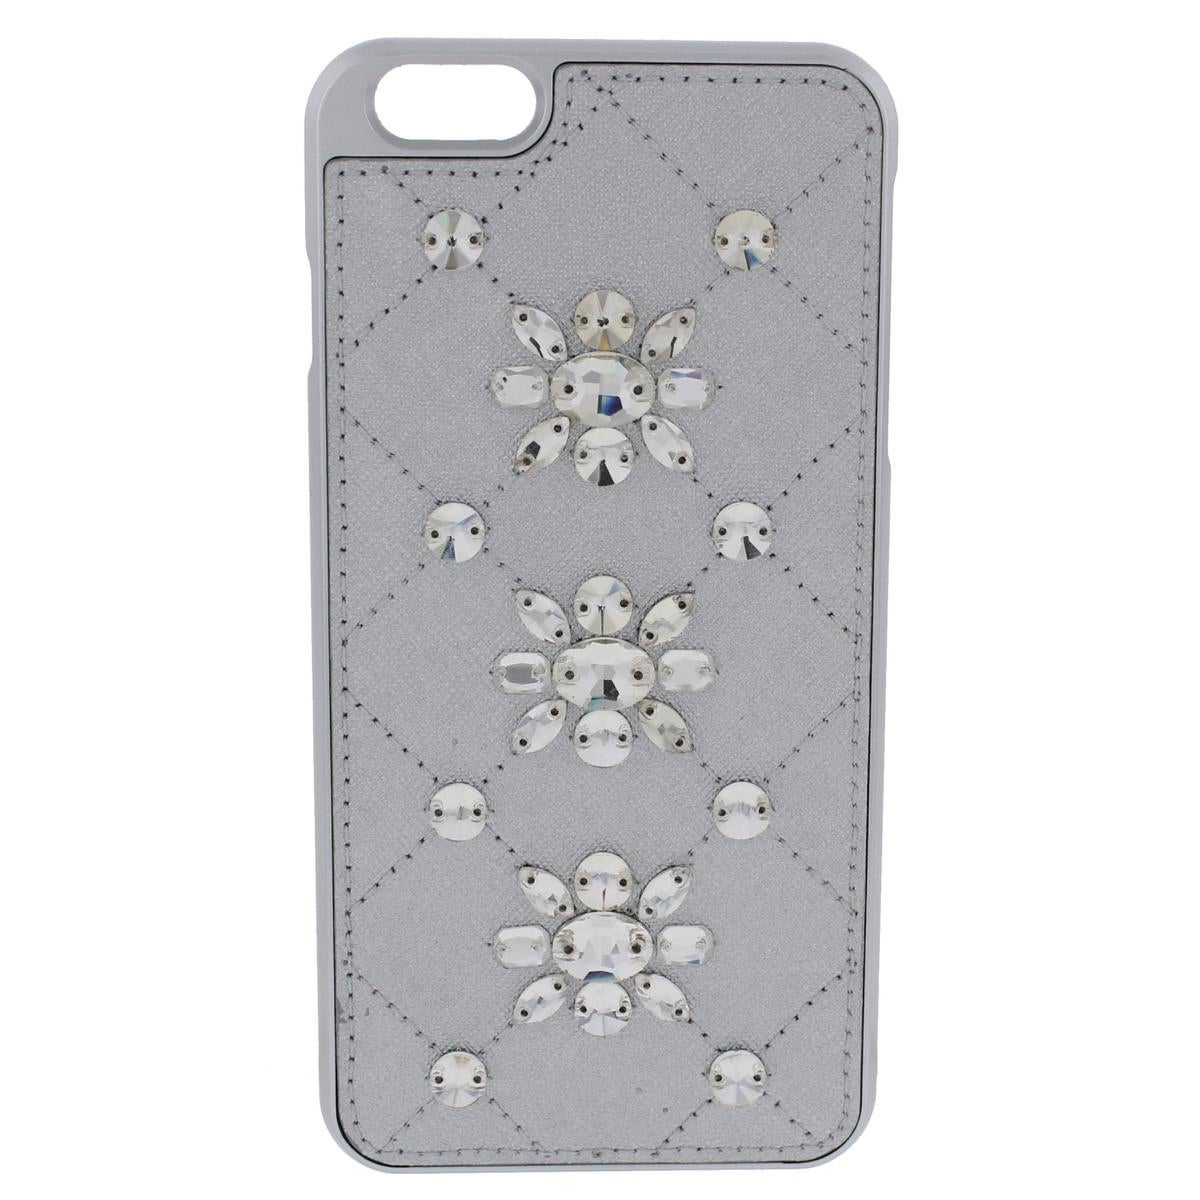 434cb76646ff Shop Michael Kors Cell Phone Case Leather Embellished - Free Shipping On  Orders Over  45 - Overstock - 18949893